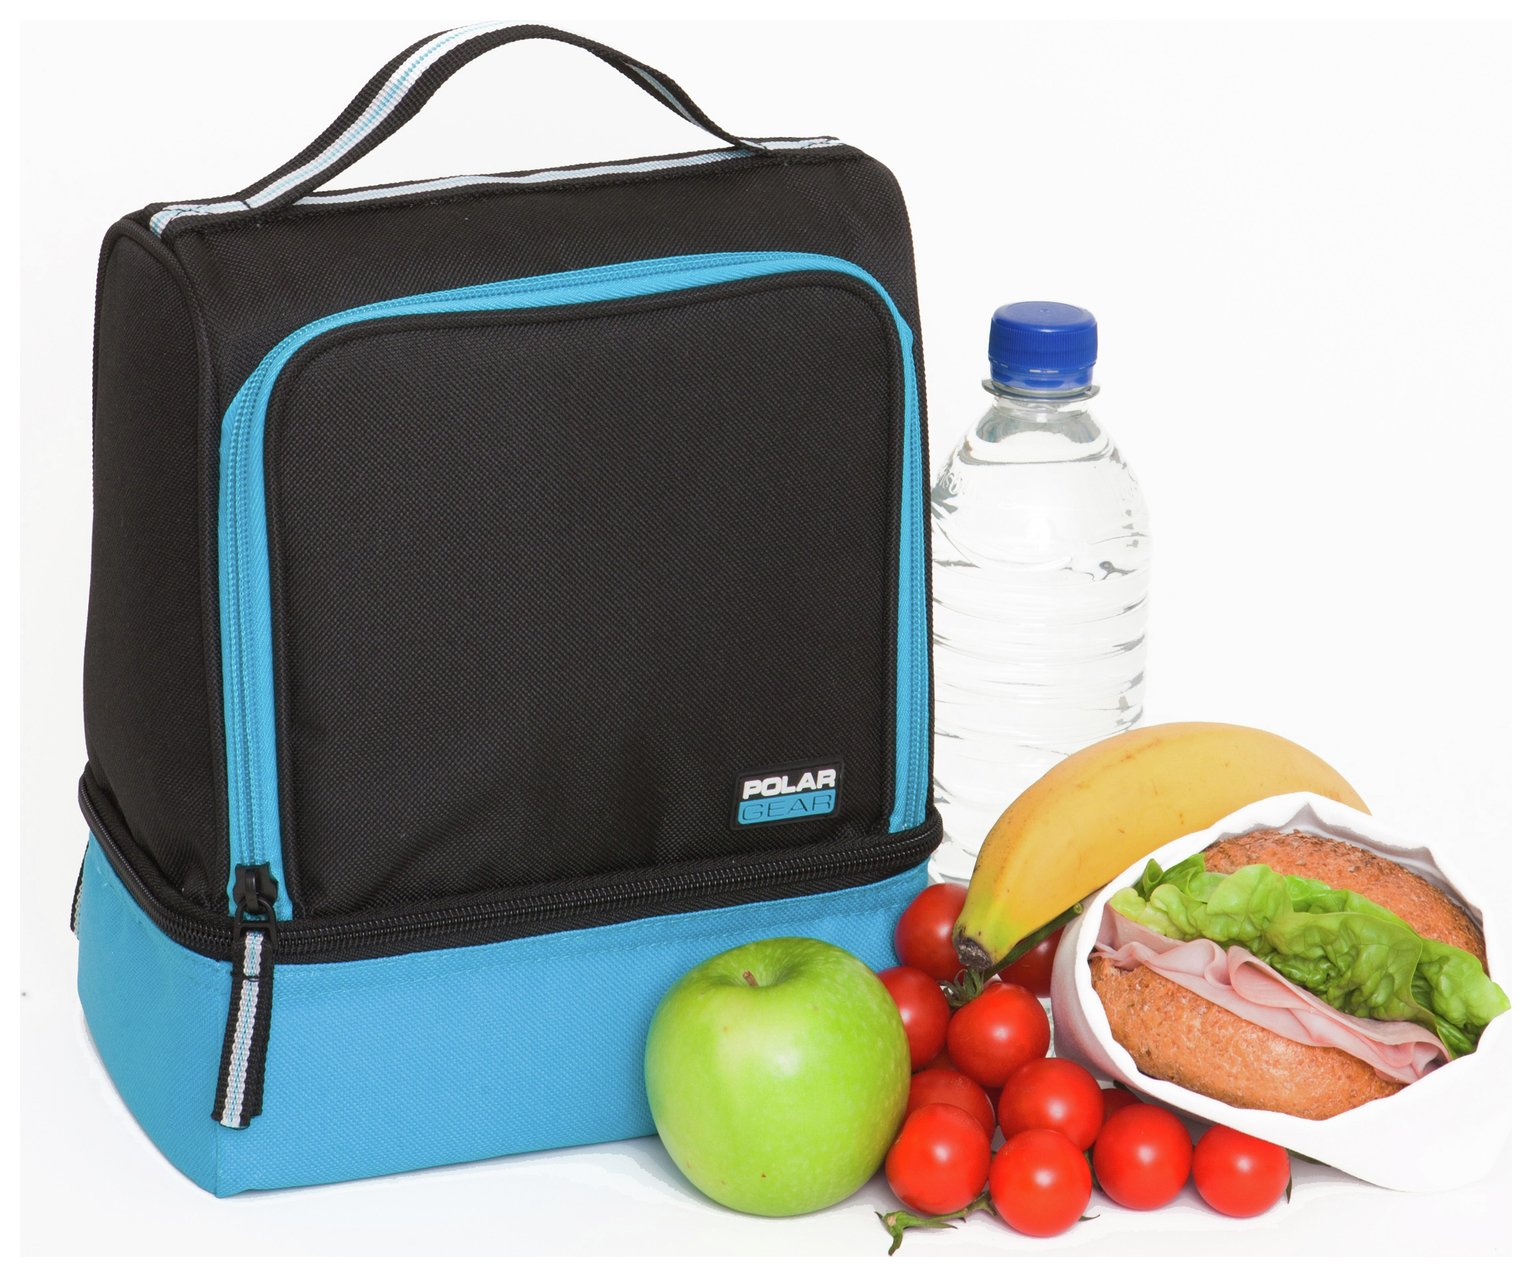 Polar Gear 2 Compartment - Turquoise.